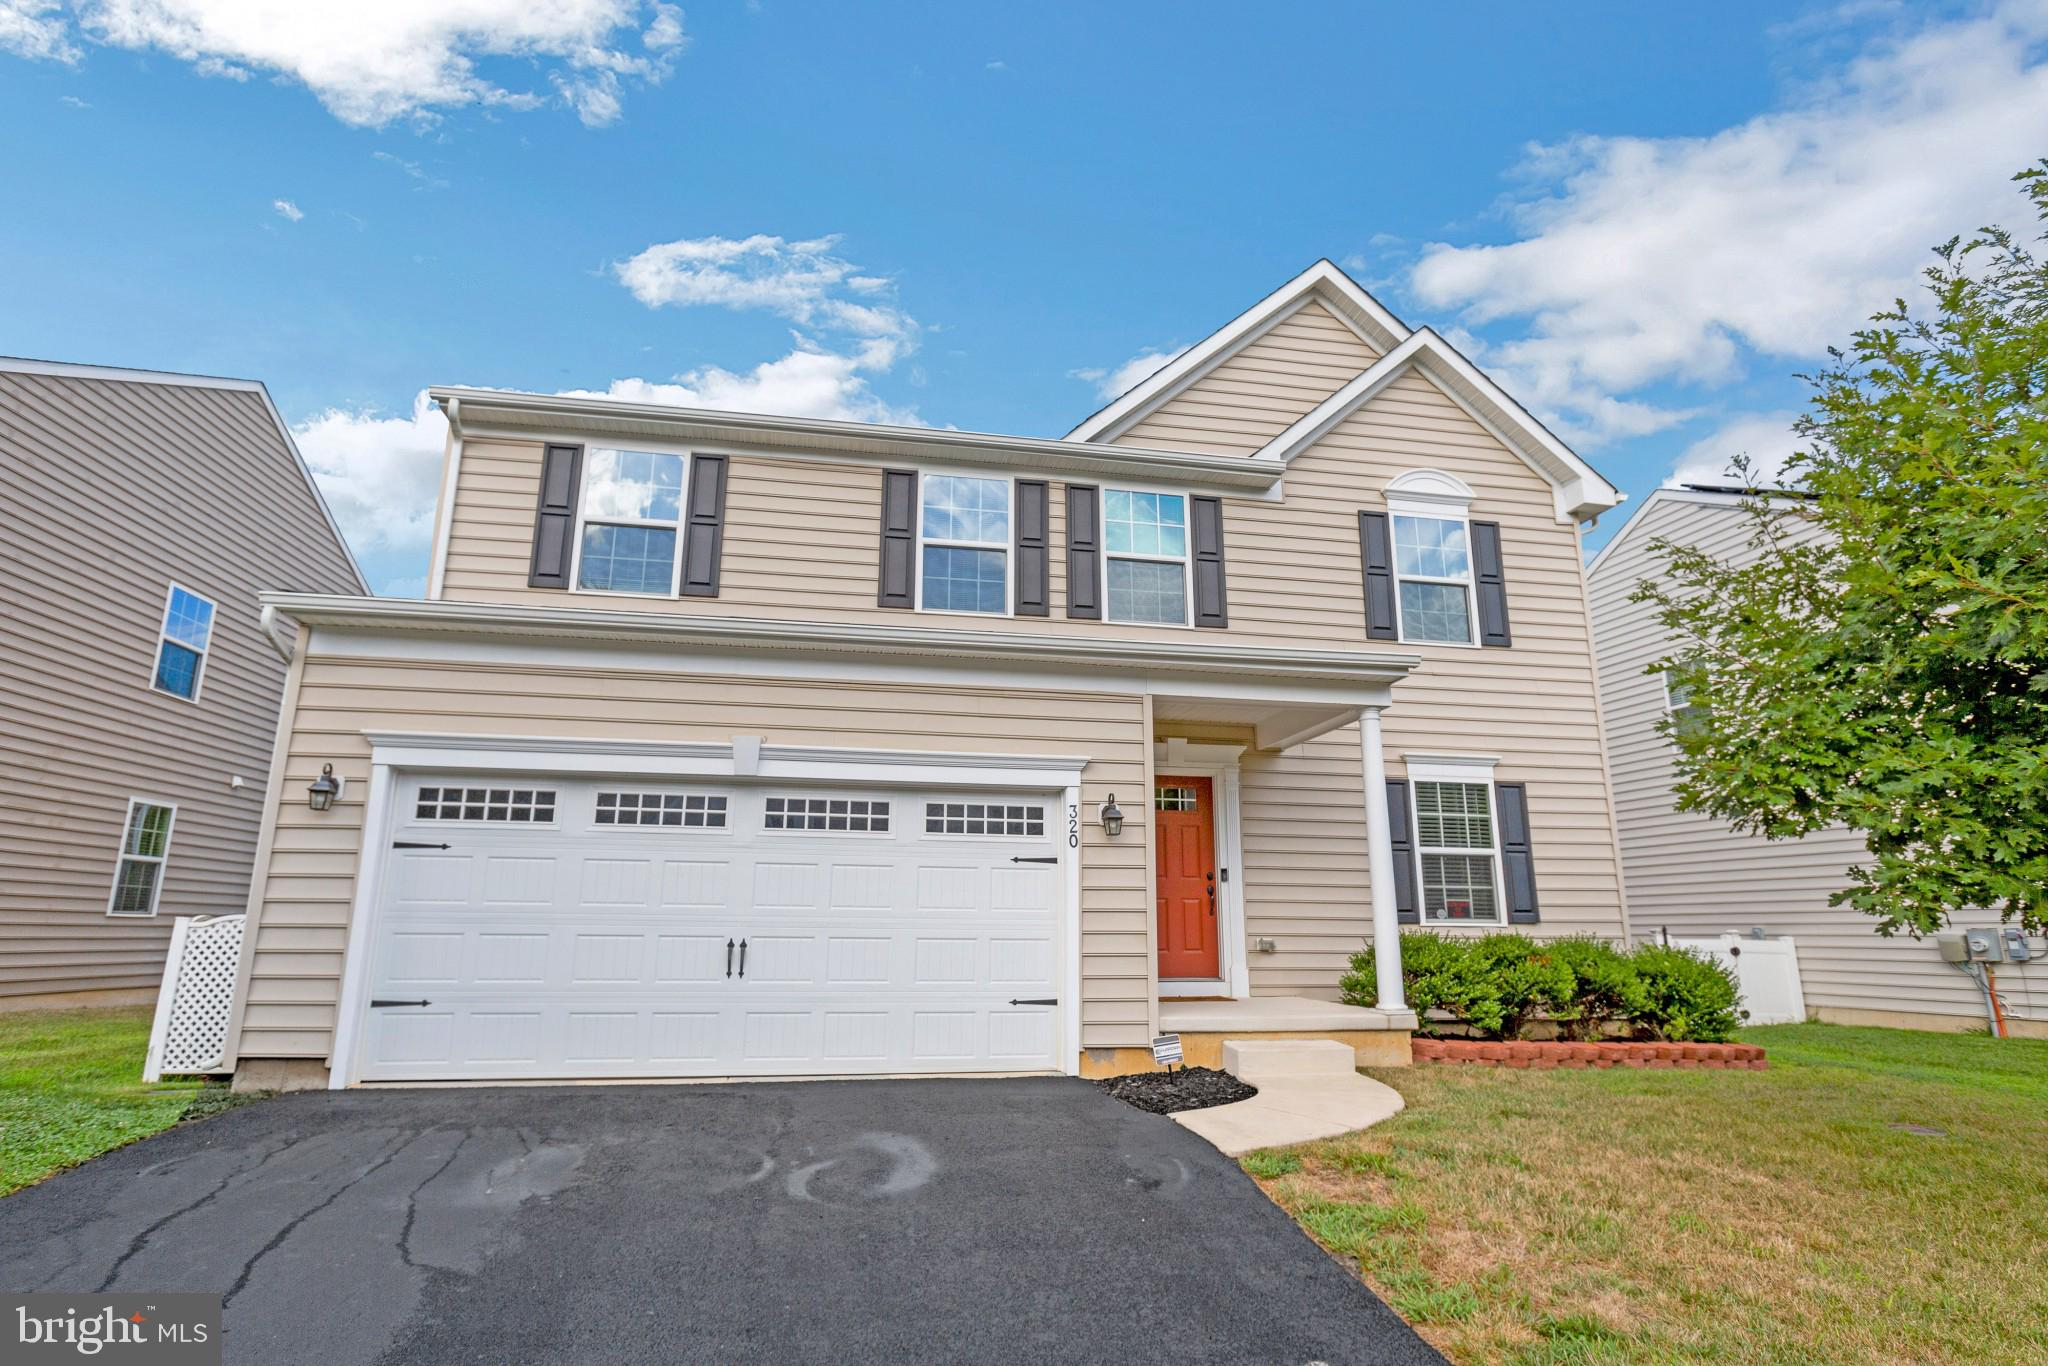 """This stunning 6-year old Middletown home with over 4,000+ sq. ft. is ready for it's new owner! When you enter the home you will find a formal sitting and dining room to your right.  Straight ahead you'll enter the massive kitchen that features stainless steel appliances, recessed lighting, 42"""" cabinets, granite countertops and an oversized island. Off of the kitchen, you'll find the breakfast room and access to the deck overlooking the backyard. The main level features a spacious family room with a gas burning fireplace. When you're working from home you can find a private study that is conveniently located on the family room. Upstairs, you will find a spacious owner suite with 2 walk-in closets, with a luxury en-suite bath. Three more bedrooms, a loft and laundry room complete the top floor. Downstairs, you will find a partially finished basement that is great for game night!The community provides residence with access to Lifestyle Amenities including the clubhouse and pool. Showings start on Friday, August 27th at 4:30pm & we will be hosting an open house on August 29th from 12-2pm."""